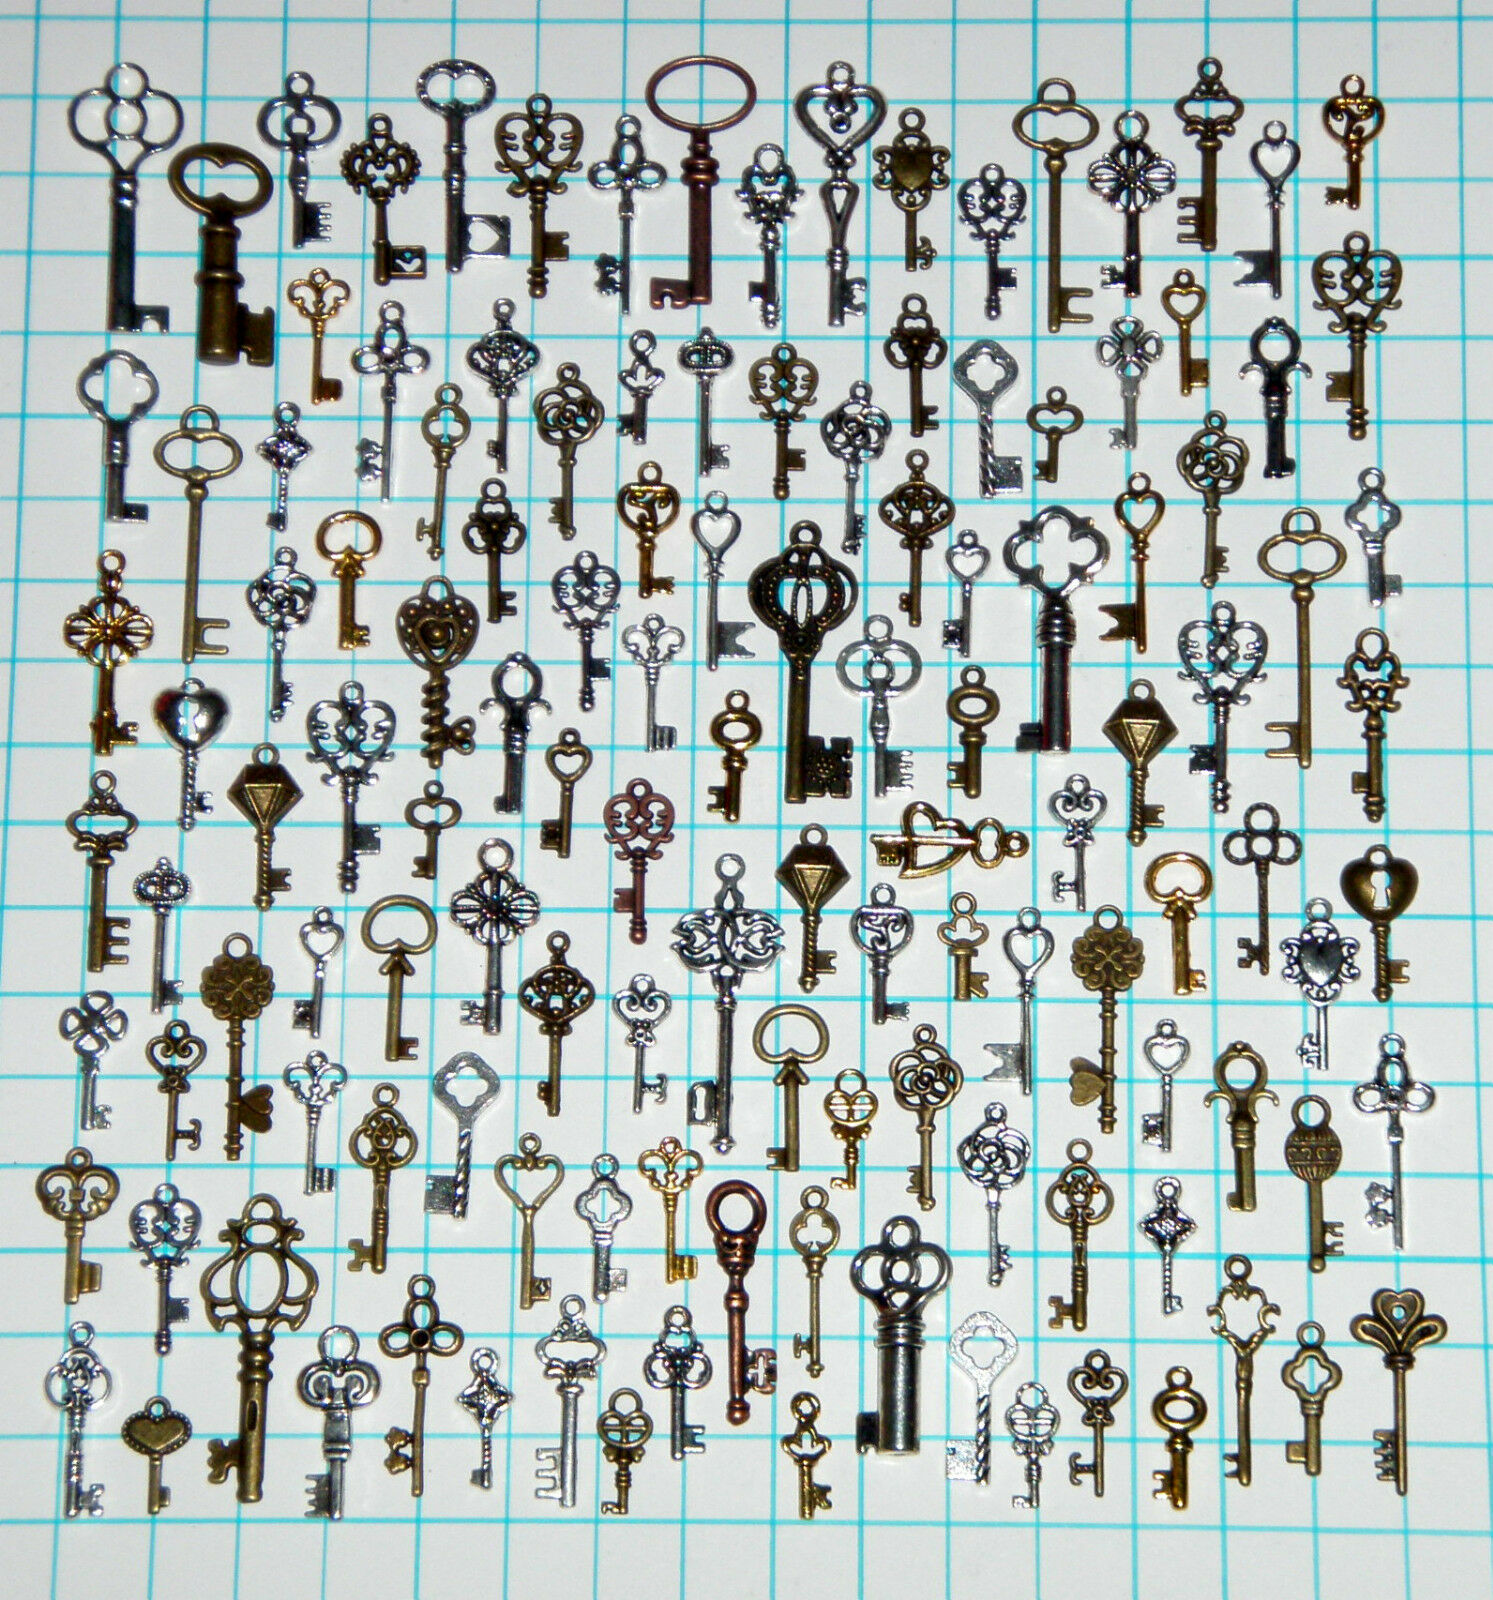 125 Antique Vtg old look Ornate Skeleton Keys Lot Pendant Fancy Heart Bow Favors